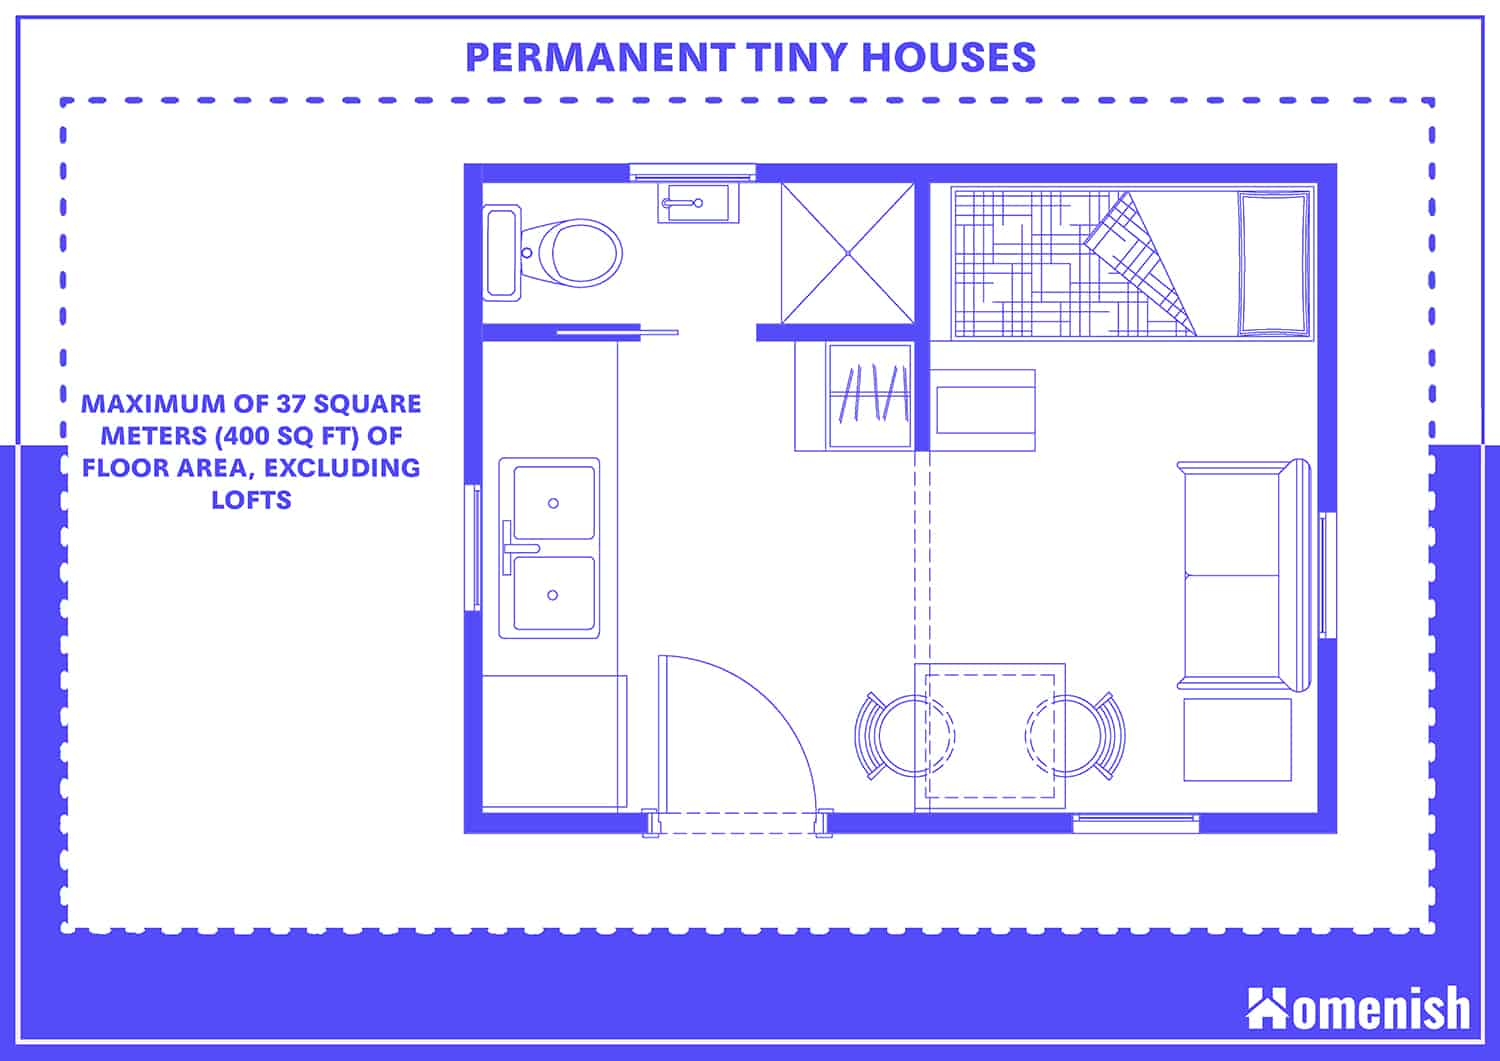 Permanent Tiny House Dimensions